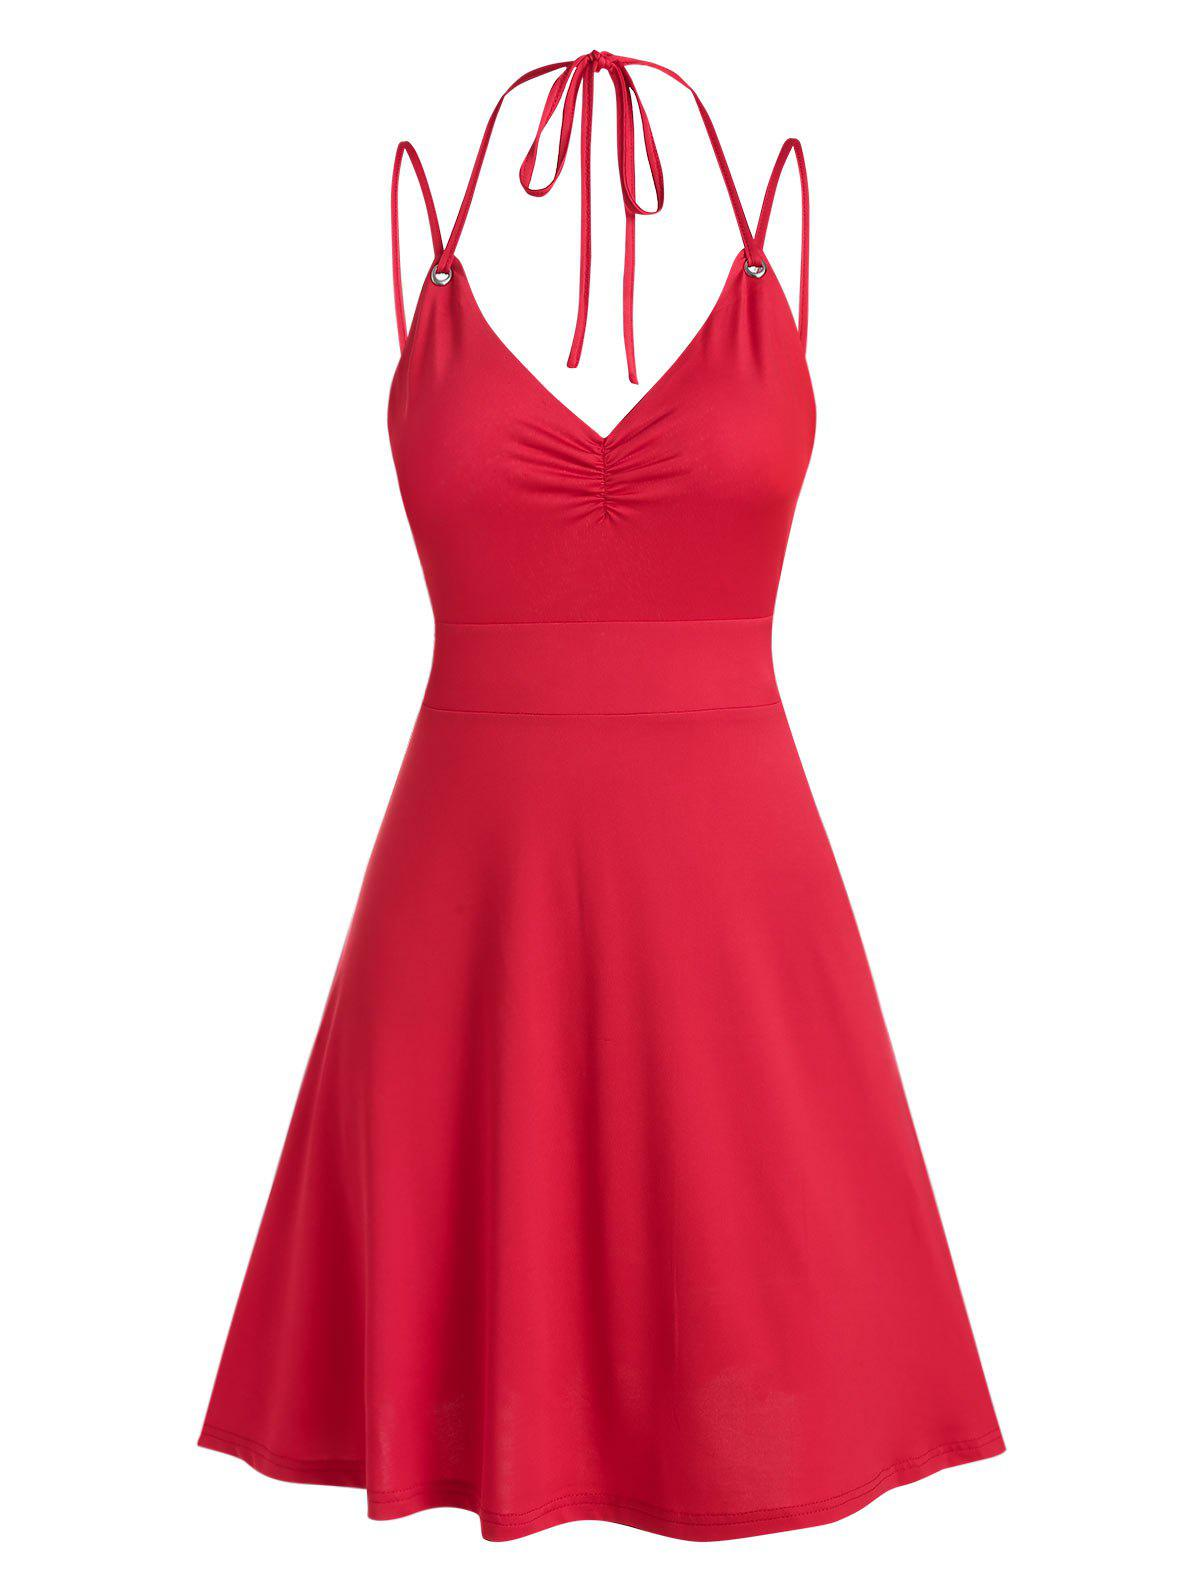 Strappy Open Back Criss-cross Dress - RED 3XL